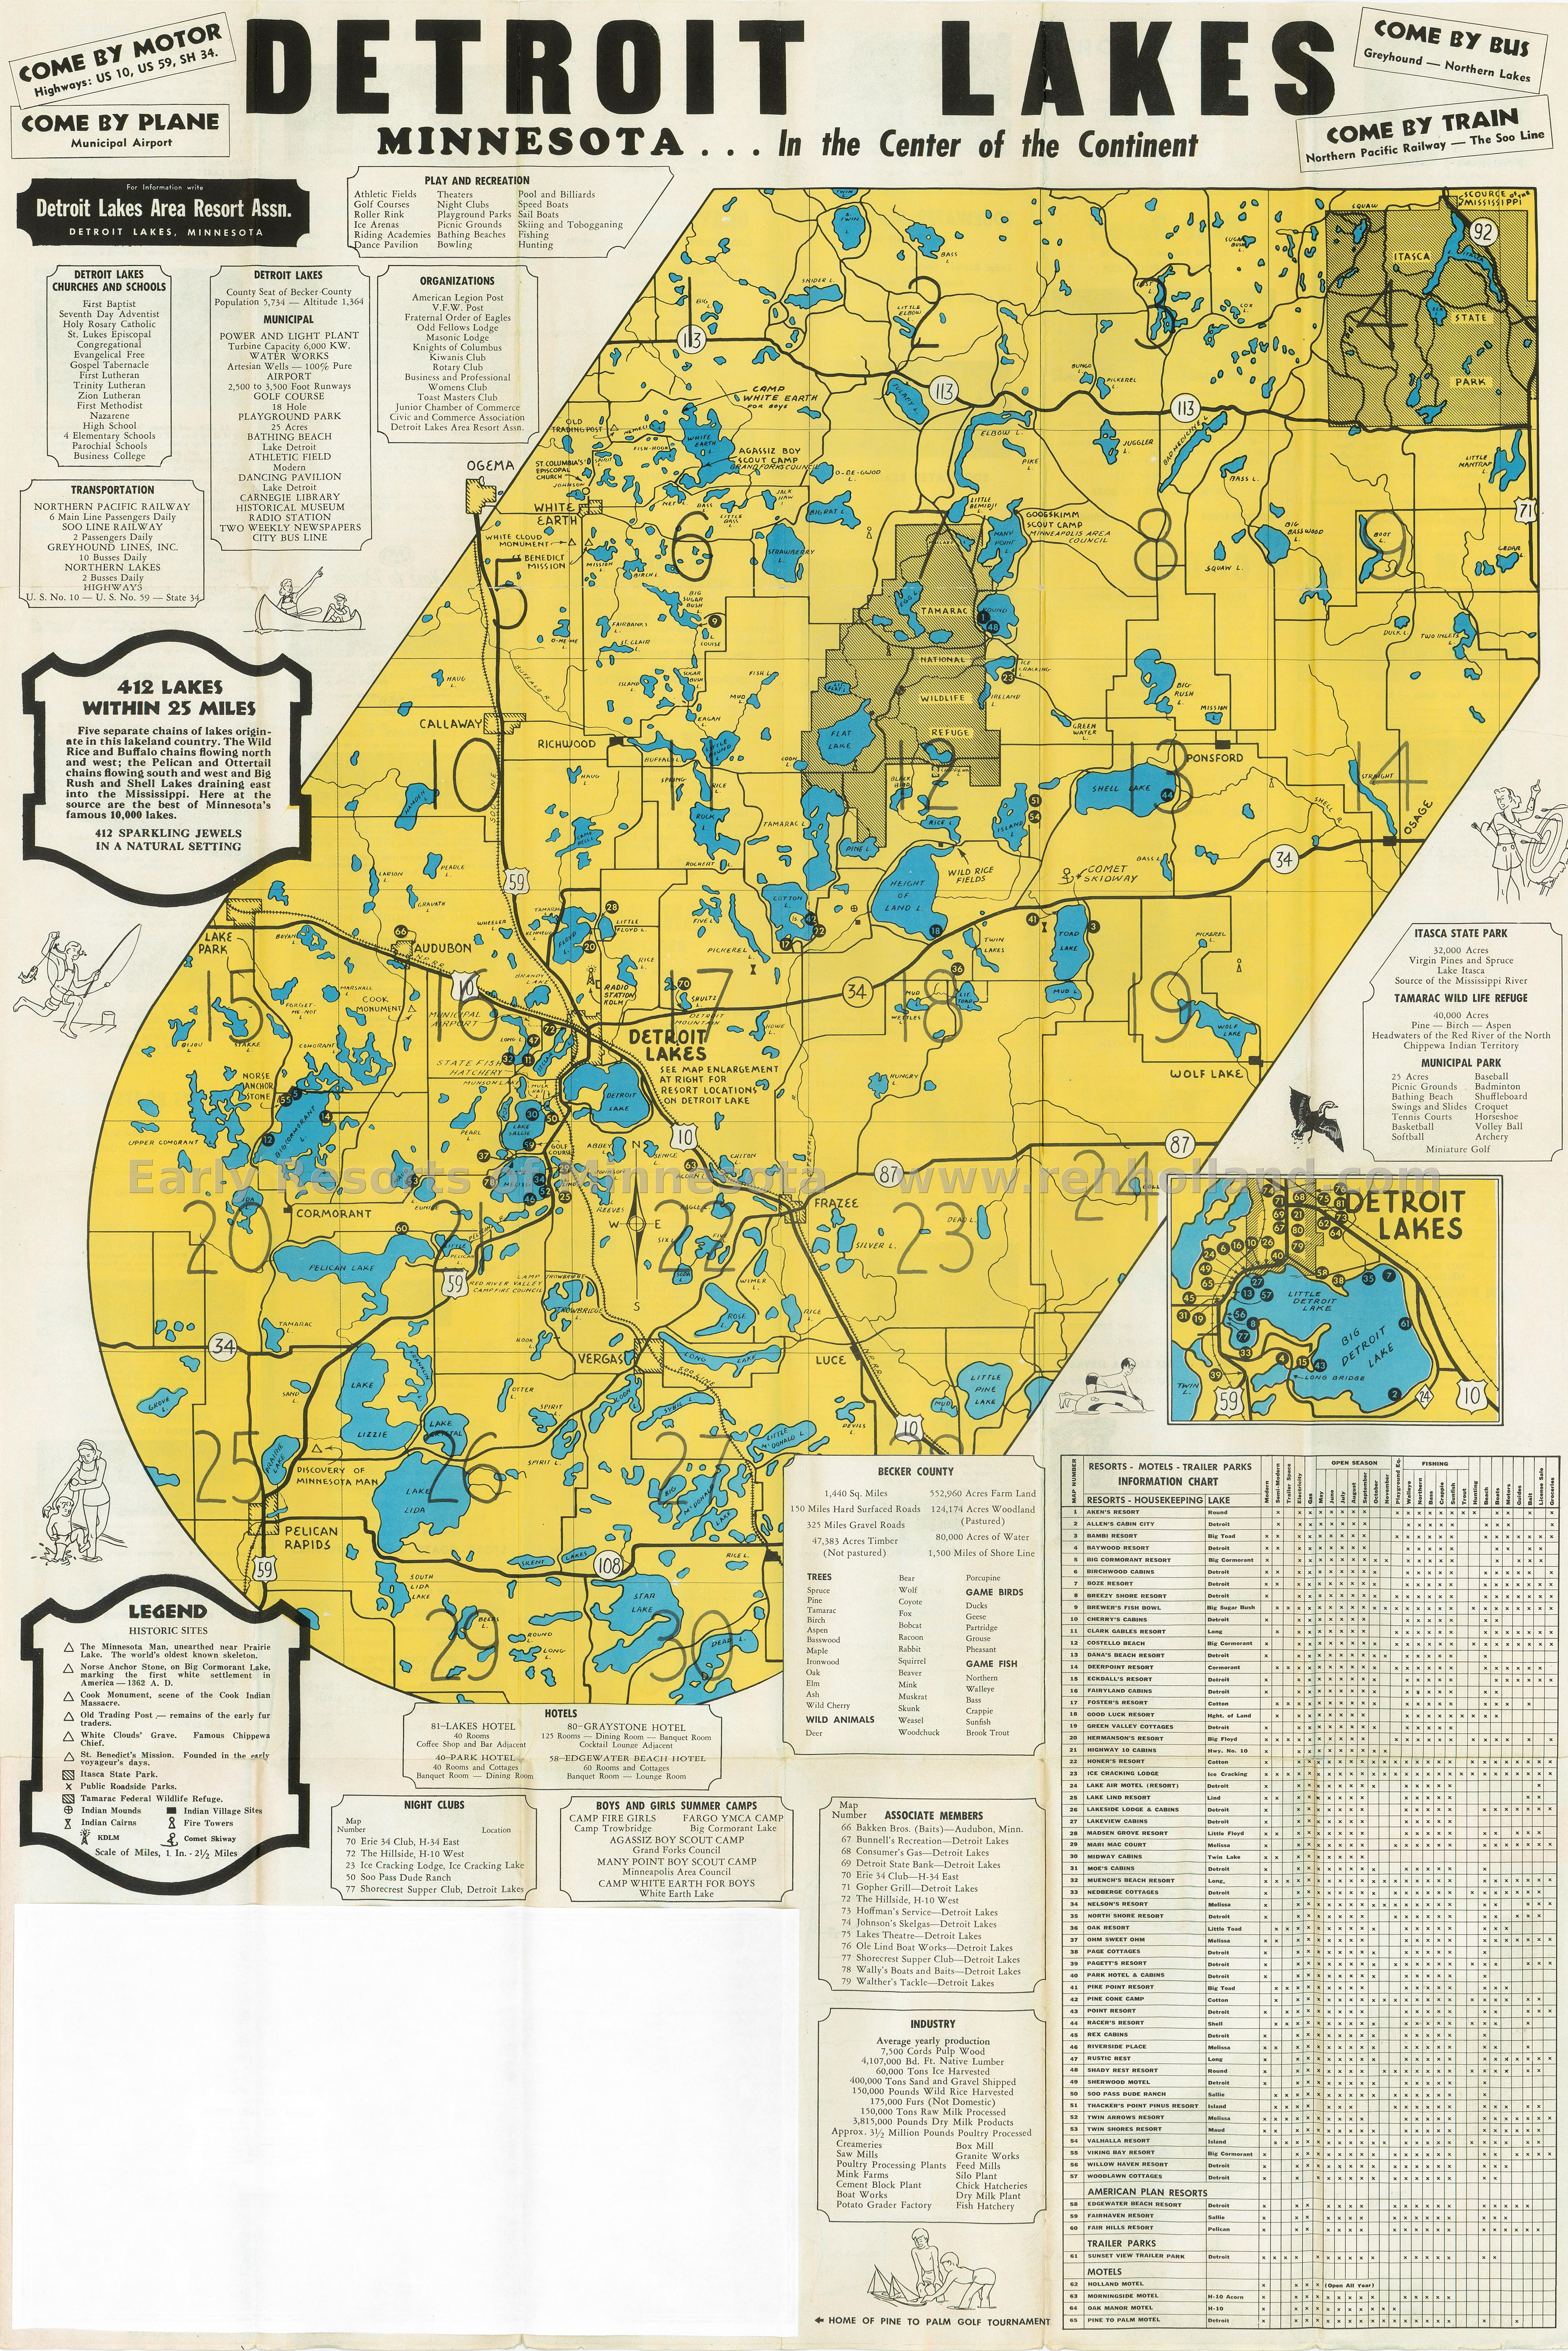 EARLY RESORTS OF MINNESOTA Maps | Ren Holland's Website on map of lakes in vermont, map of orange county, map mn cities, map of lake michigan, map of minn, map of sask lakes, map of palm beach county, map of maine usa, map of balsam lake, map of eastern sd lakes, map of africa lakes, map of ar lakes, map of road united interstate highway, map of lakes in california, map of western pa lakes, map of michigan townships, map of ny state lakes, map of bc lakes, map of ontario canada lakes, map of bwca lakes,